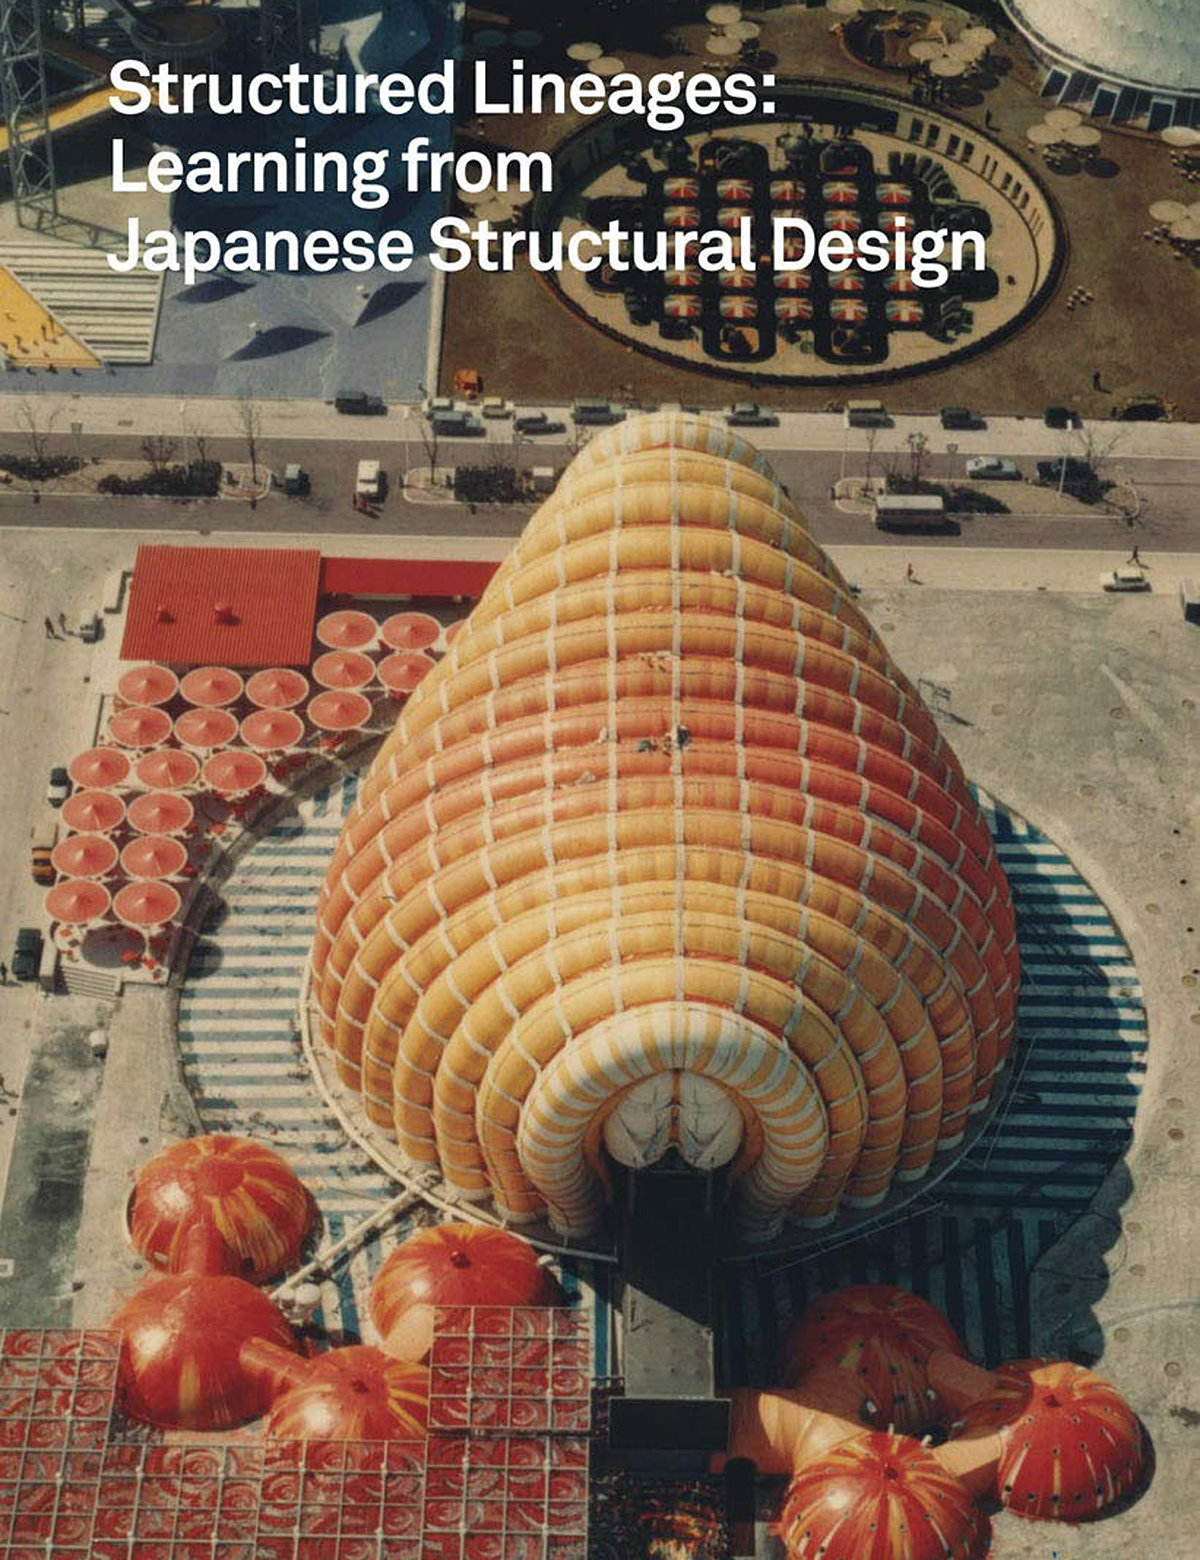 Structured Lineages - Learning from Japanese Structural Design